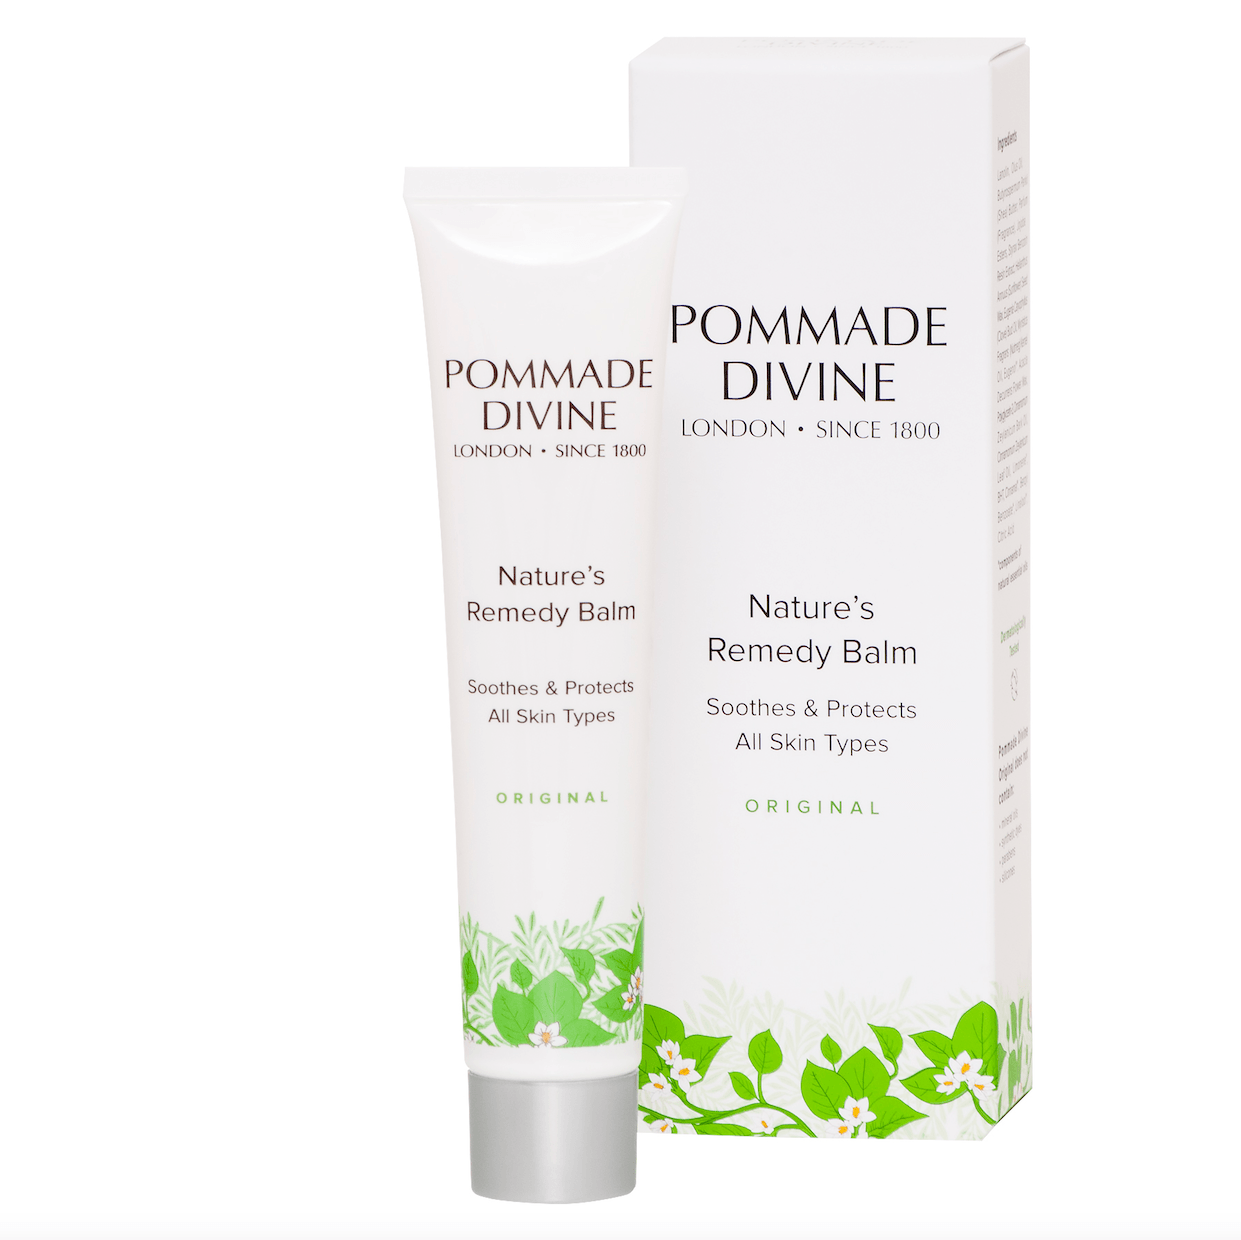 Pommade Divine On-the-Go Tube Bodycare - Misc. Pommade Divine